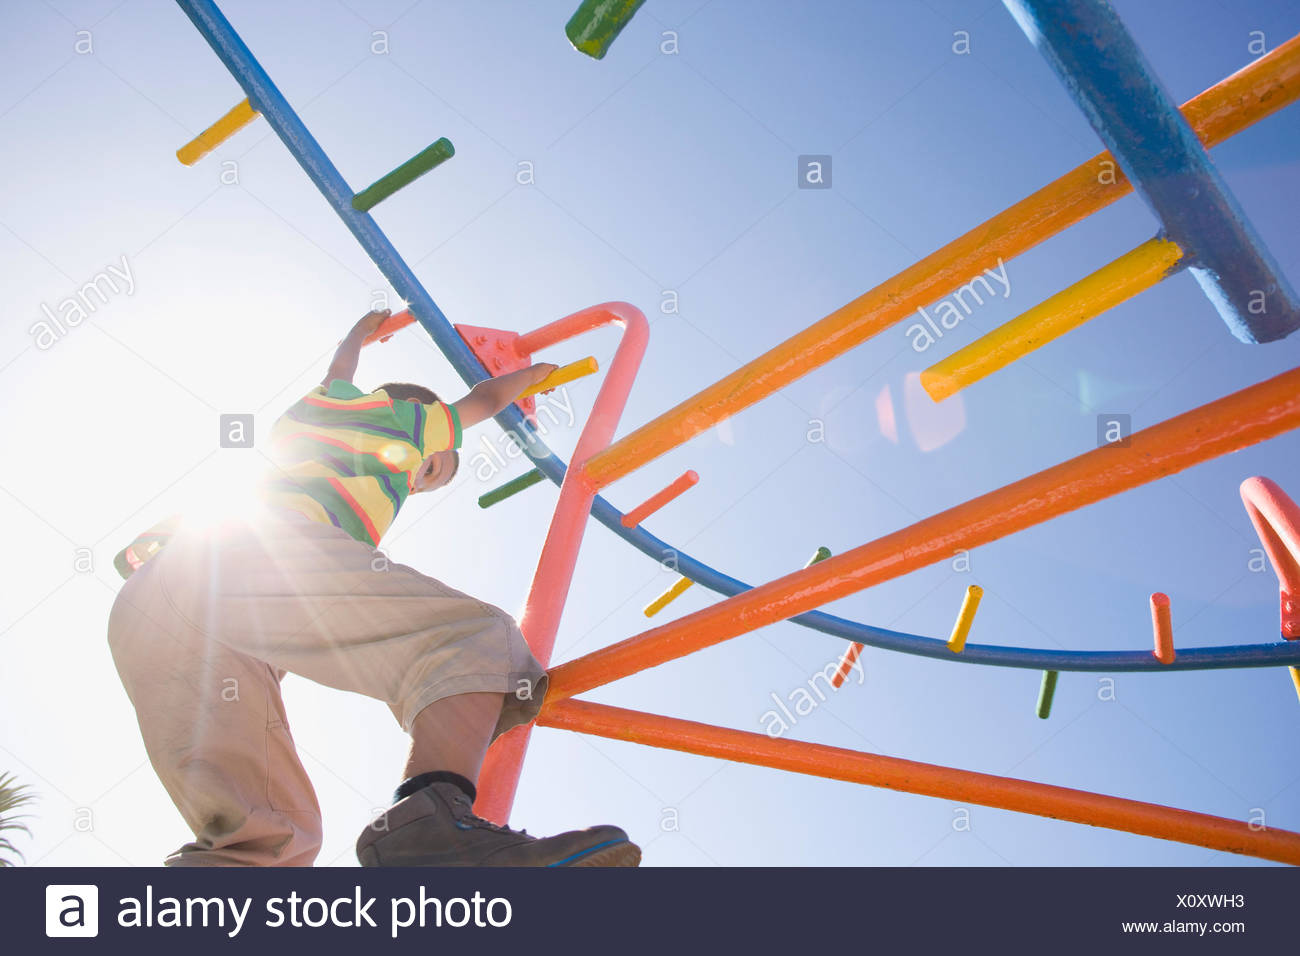 Boy hanging from monkey bars at playground - Stock Image